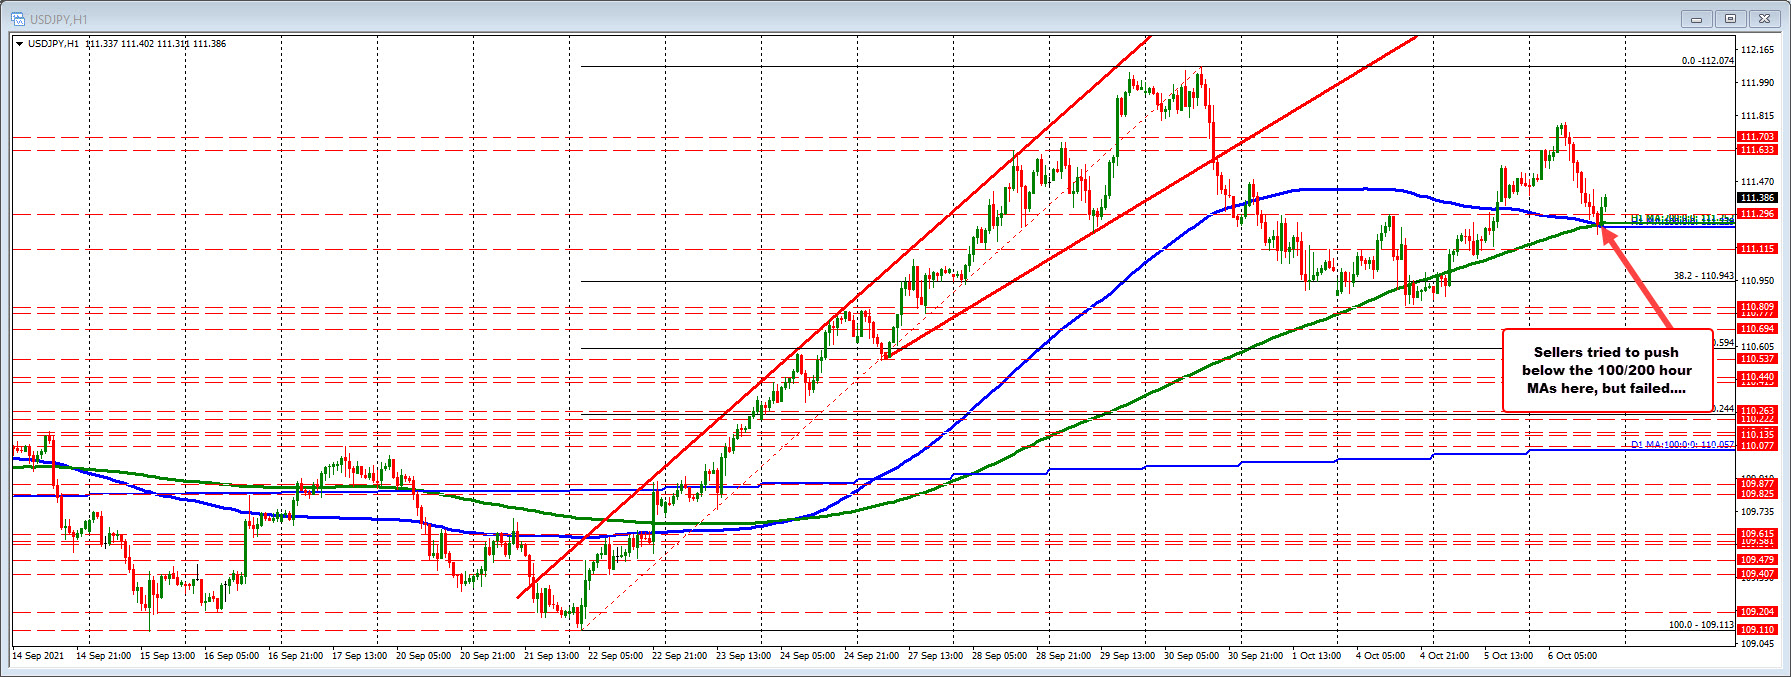 USDJPY pushes higher after dip below 100/200 hour MA fails